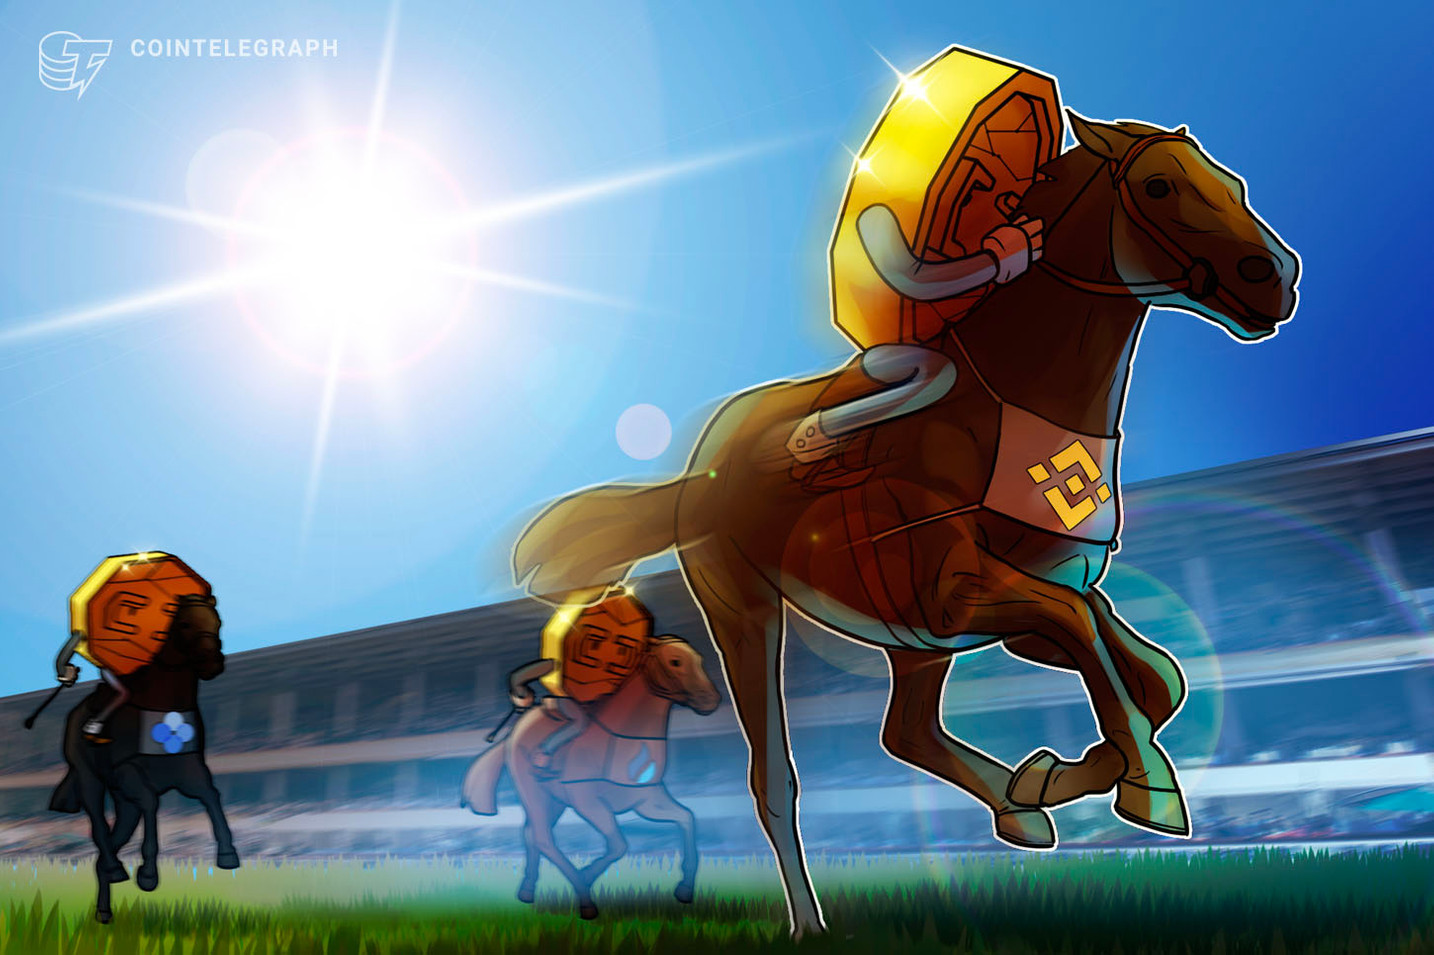 Binance overtakes Huobi, OKEx as biggest derivatives exchange